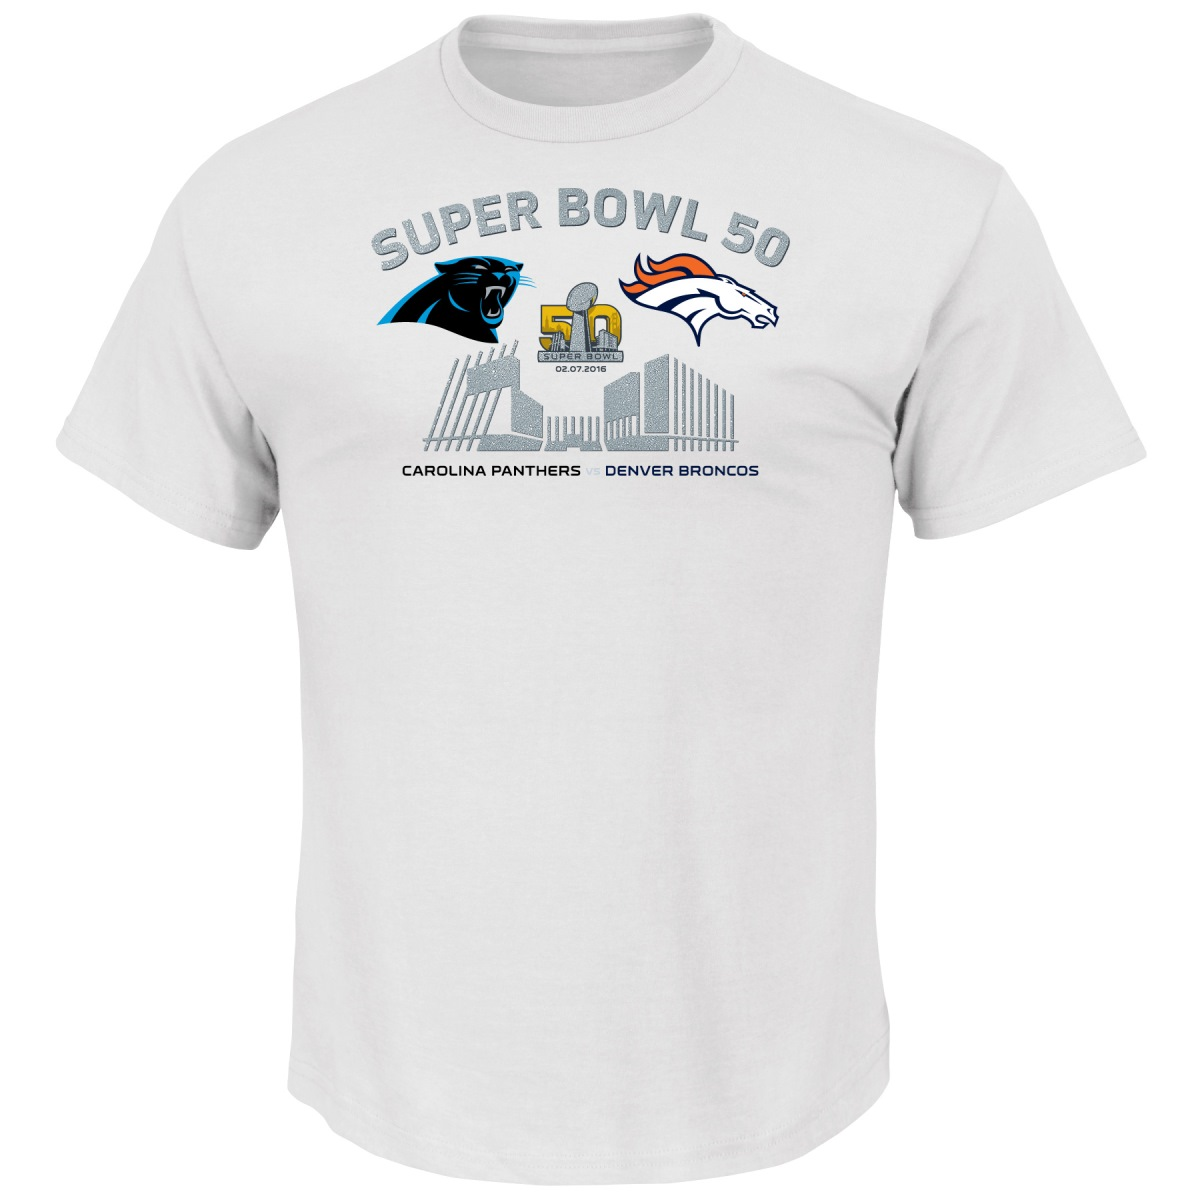 Carolina Panthers vs Denver Broncos NFL Super Bowl 50 Realm S/S T-Shirt